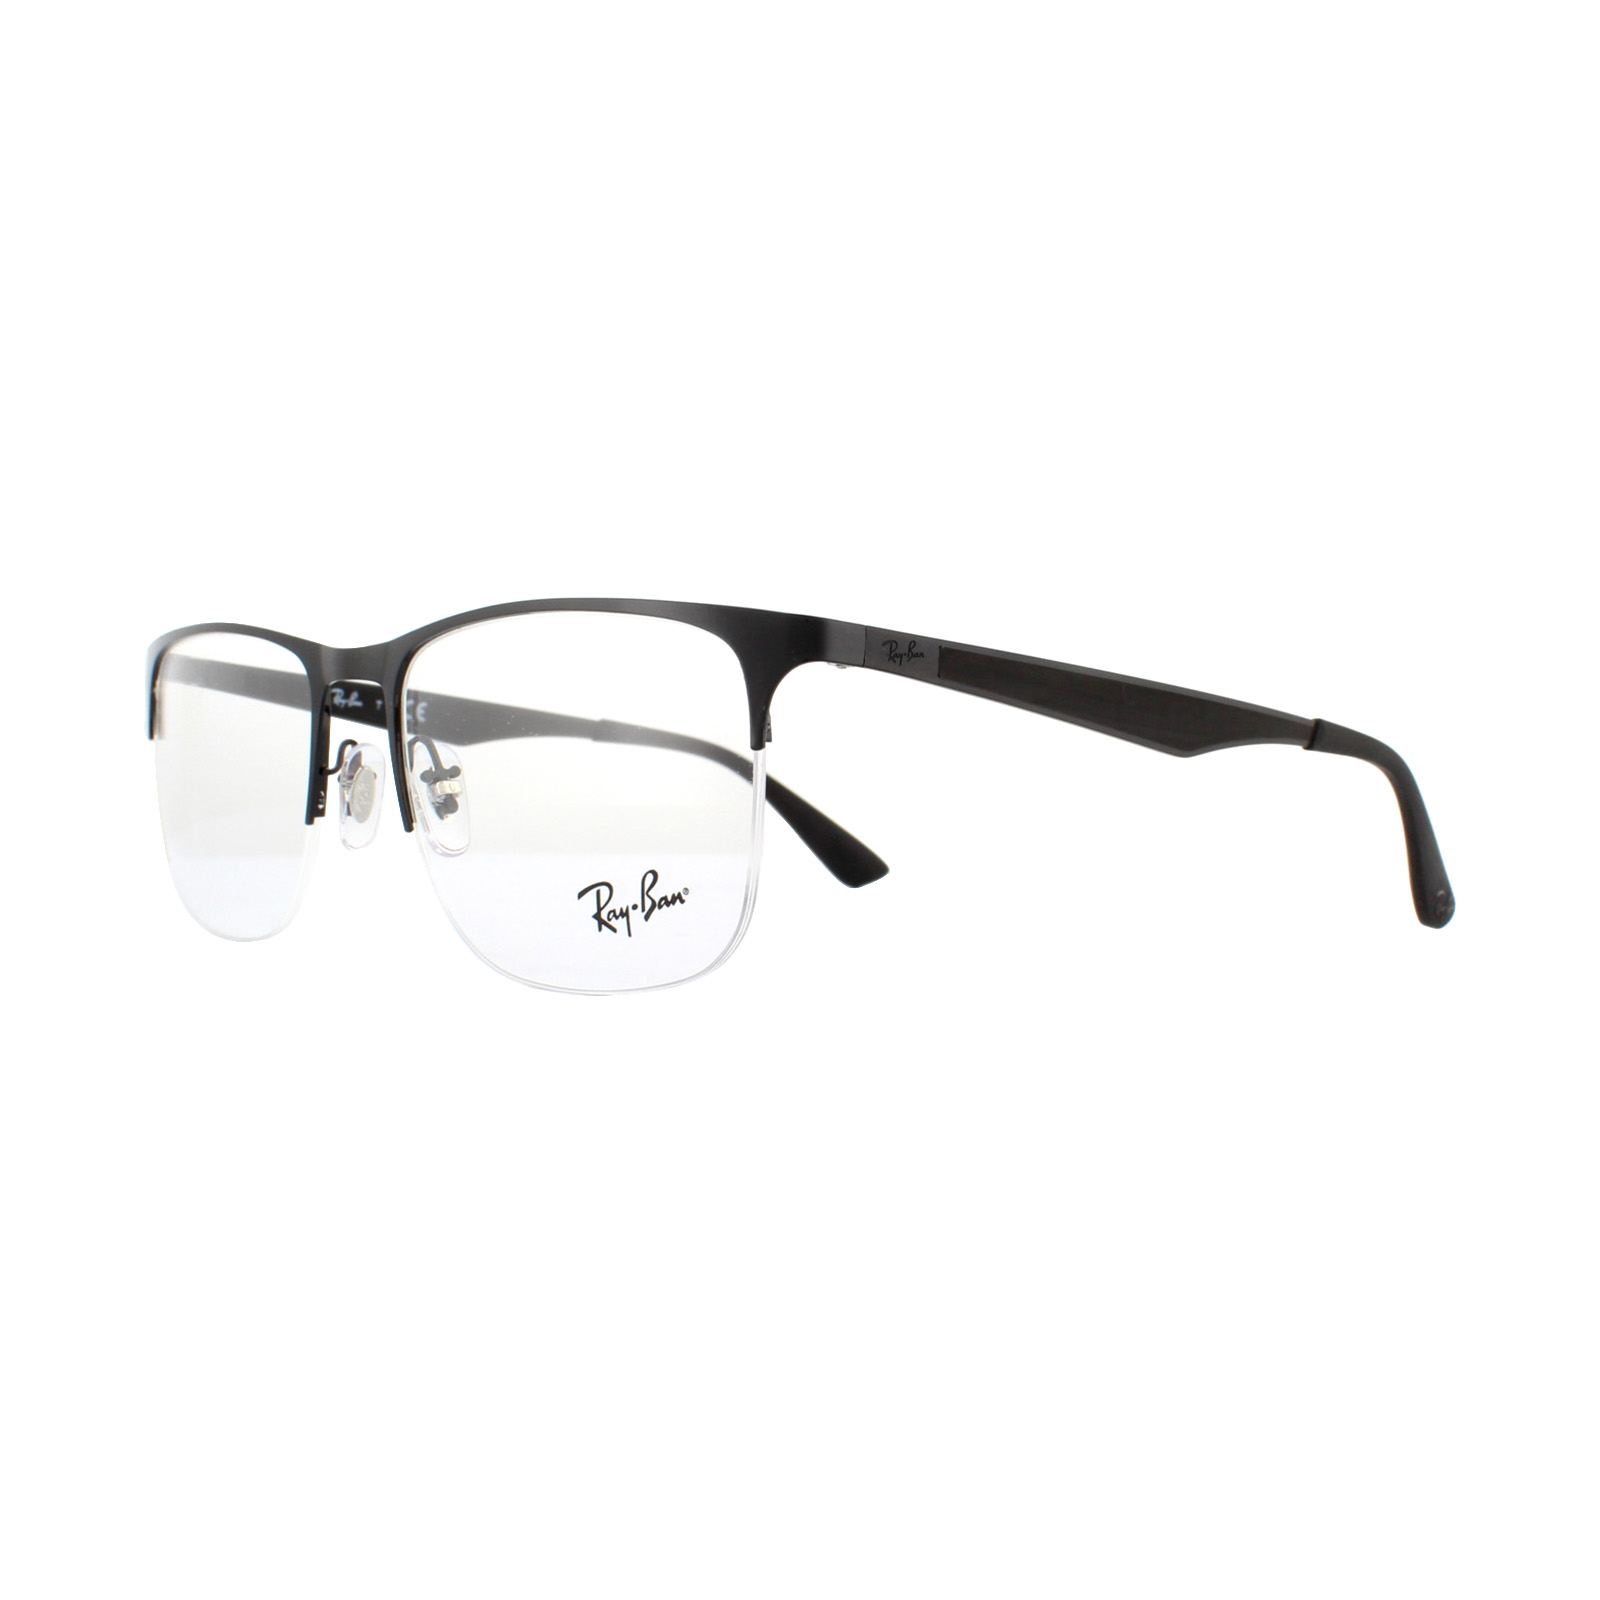 a6cd972e5c2 Cheap Ray-Ban RX 6362 Glasses Frames - Discounted Sunglasses